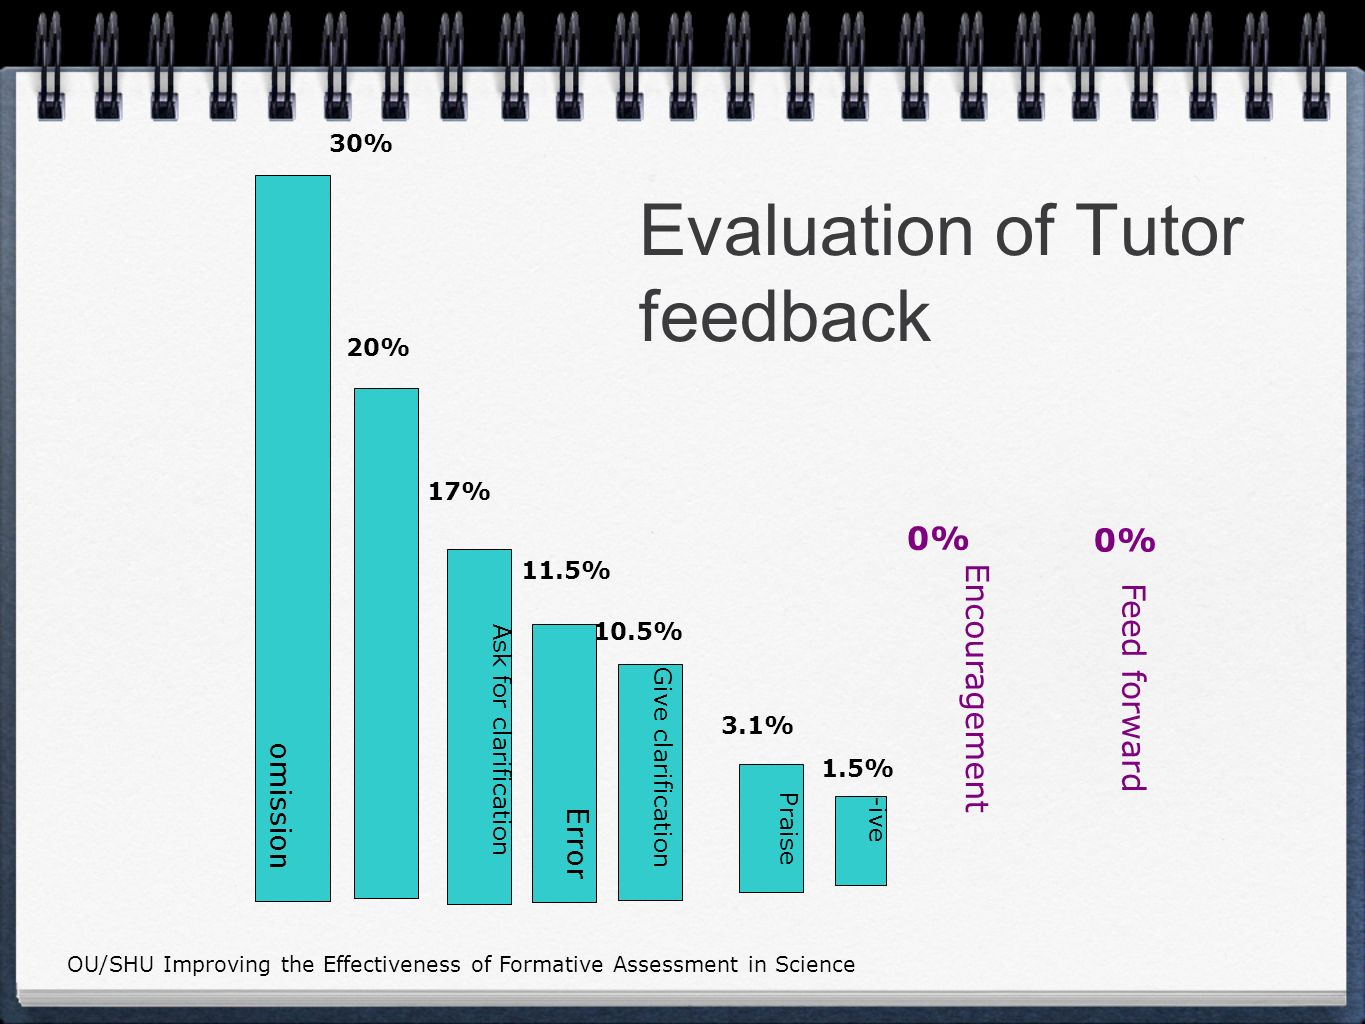 Evaluation of Tutor feedback omission Use of English Ask for clarification Error Give clarification Praise Encouragement Feed forward -ive 30% 20% 17% 11.5% 10.5% 3.1% 1.5% 0% 0% OU/SHU Improving the Effectiveness of Formative Assessment in Science